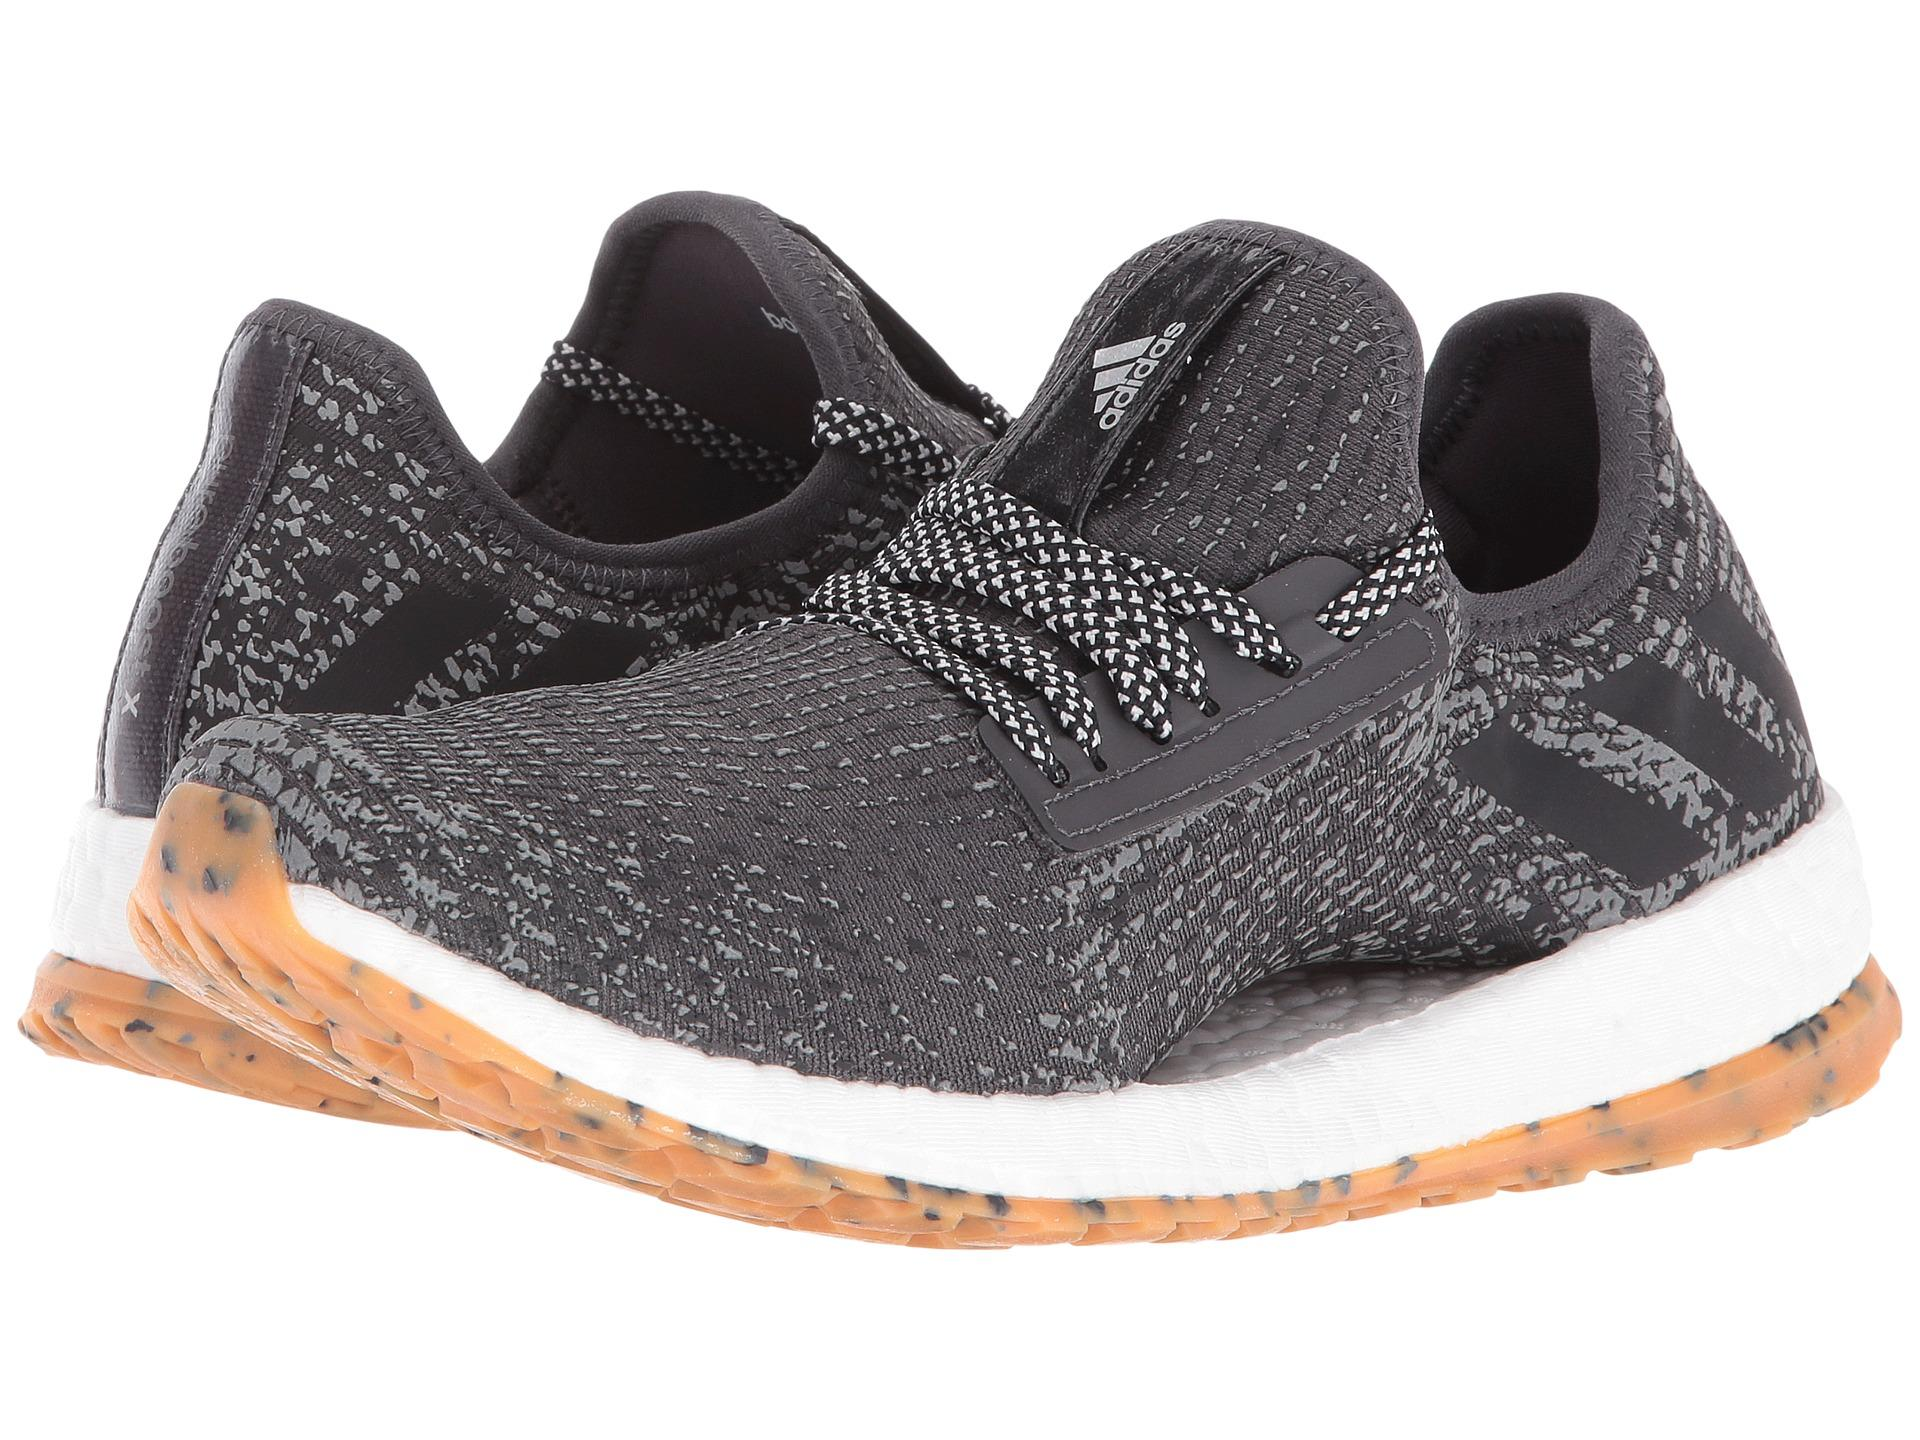 cfdad53c29204 ... women running shoes 0a324 353b1  promo code for lyst adidas originals pure  boost x atr in black for men 6c1ab 461ee